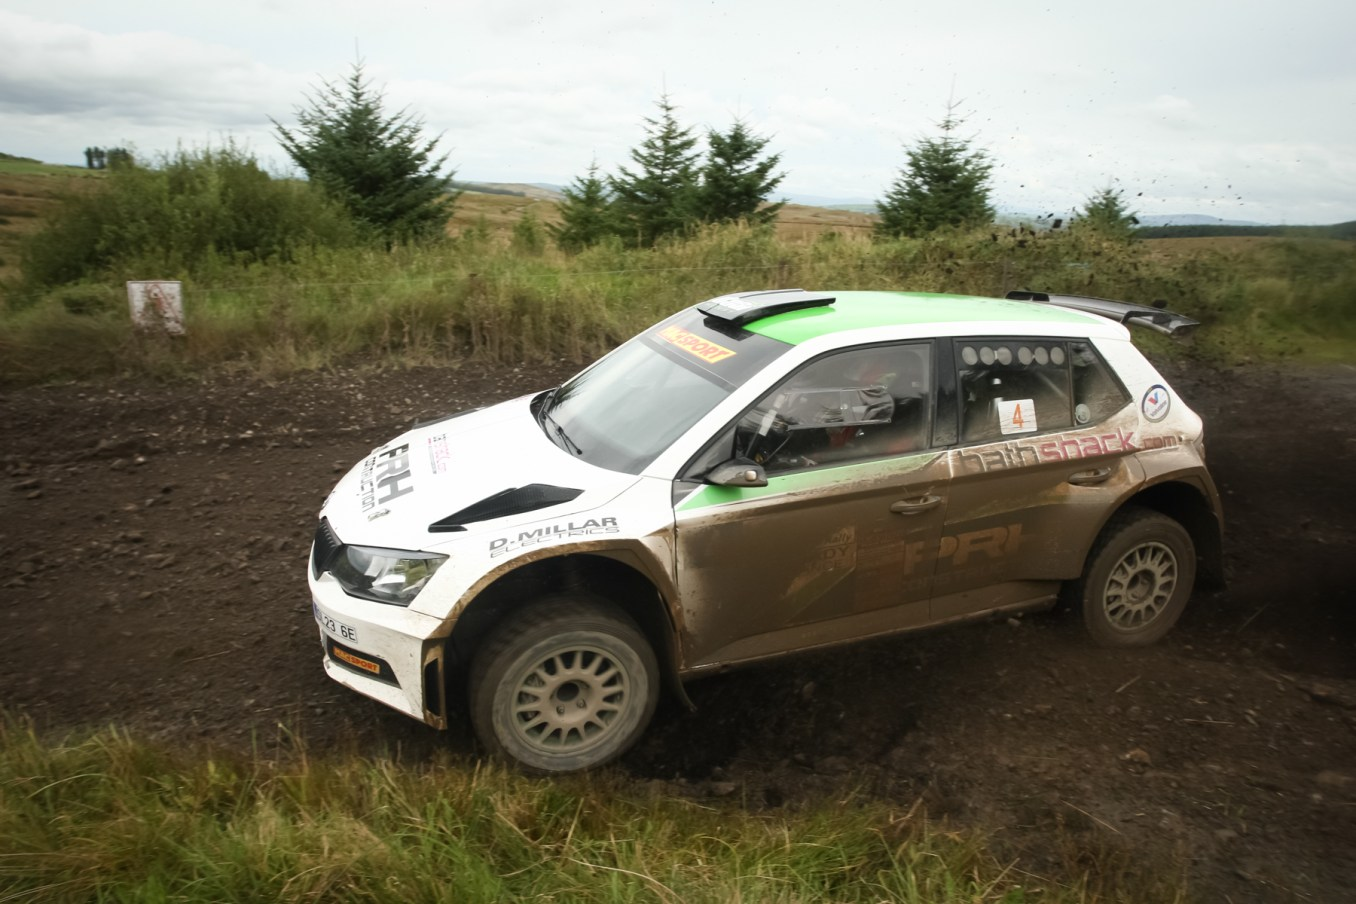 Desi Henry - Overall Bushwacker Rally Winner in his Skoda Fabia R5 (1)